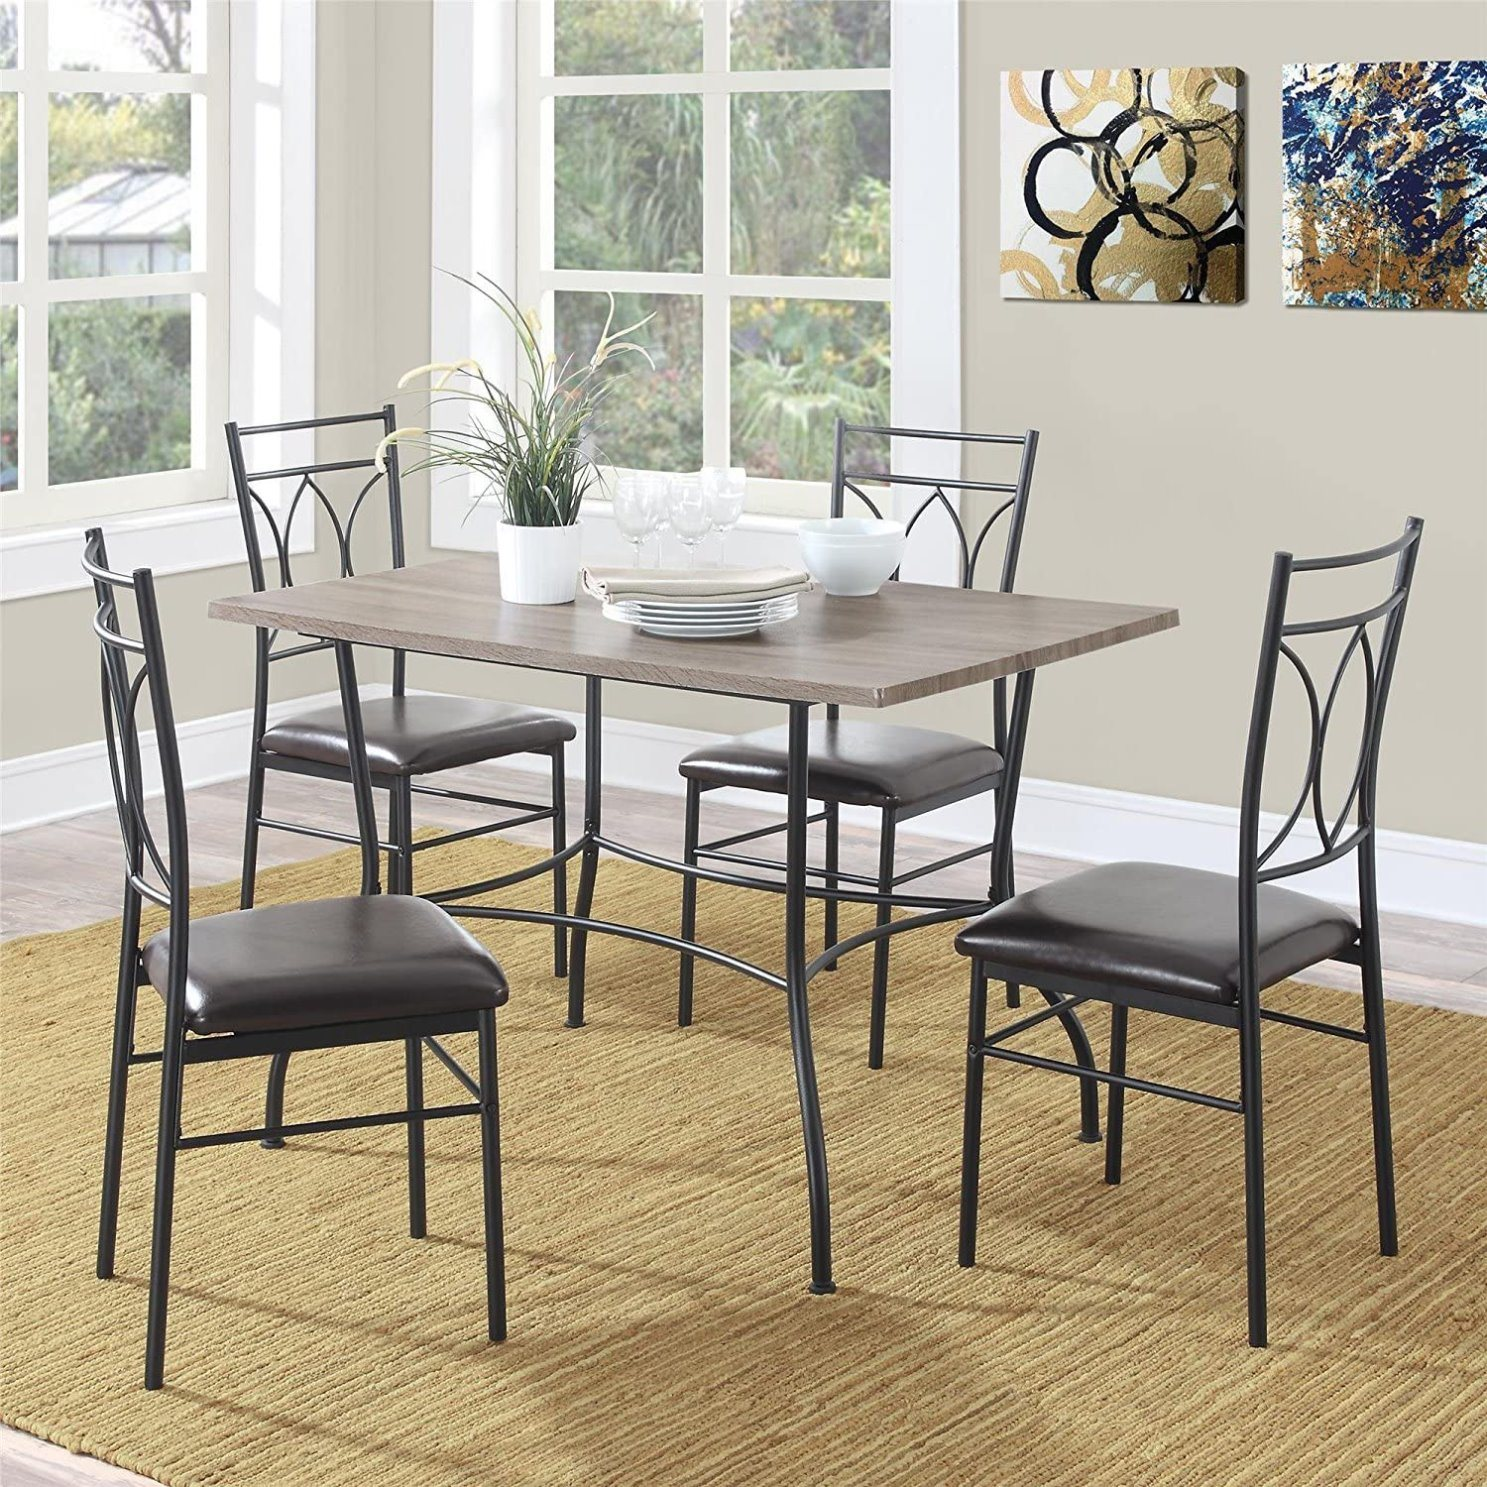 China Wholesale Factory Direct Dining Room Sets China Dining Table Set Dining Table